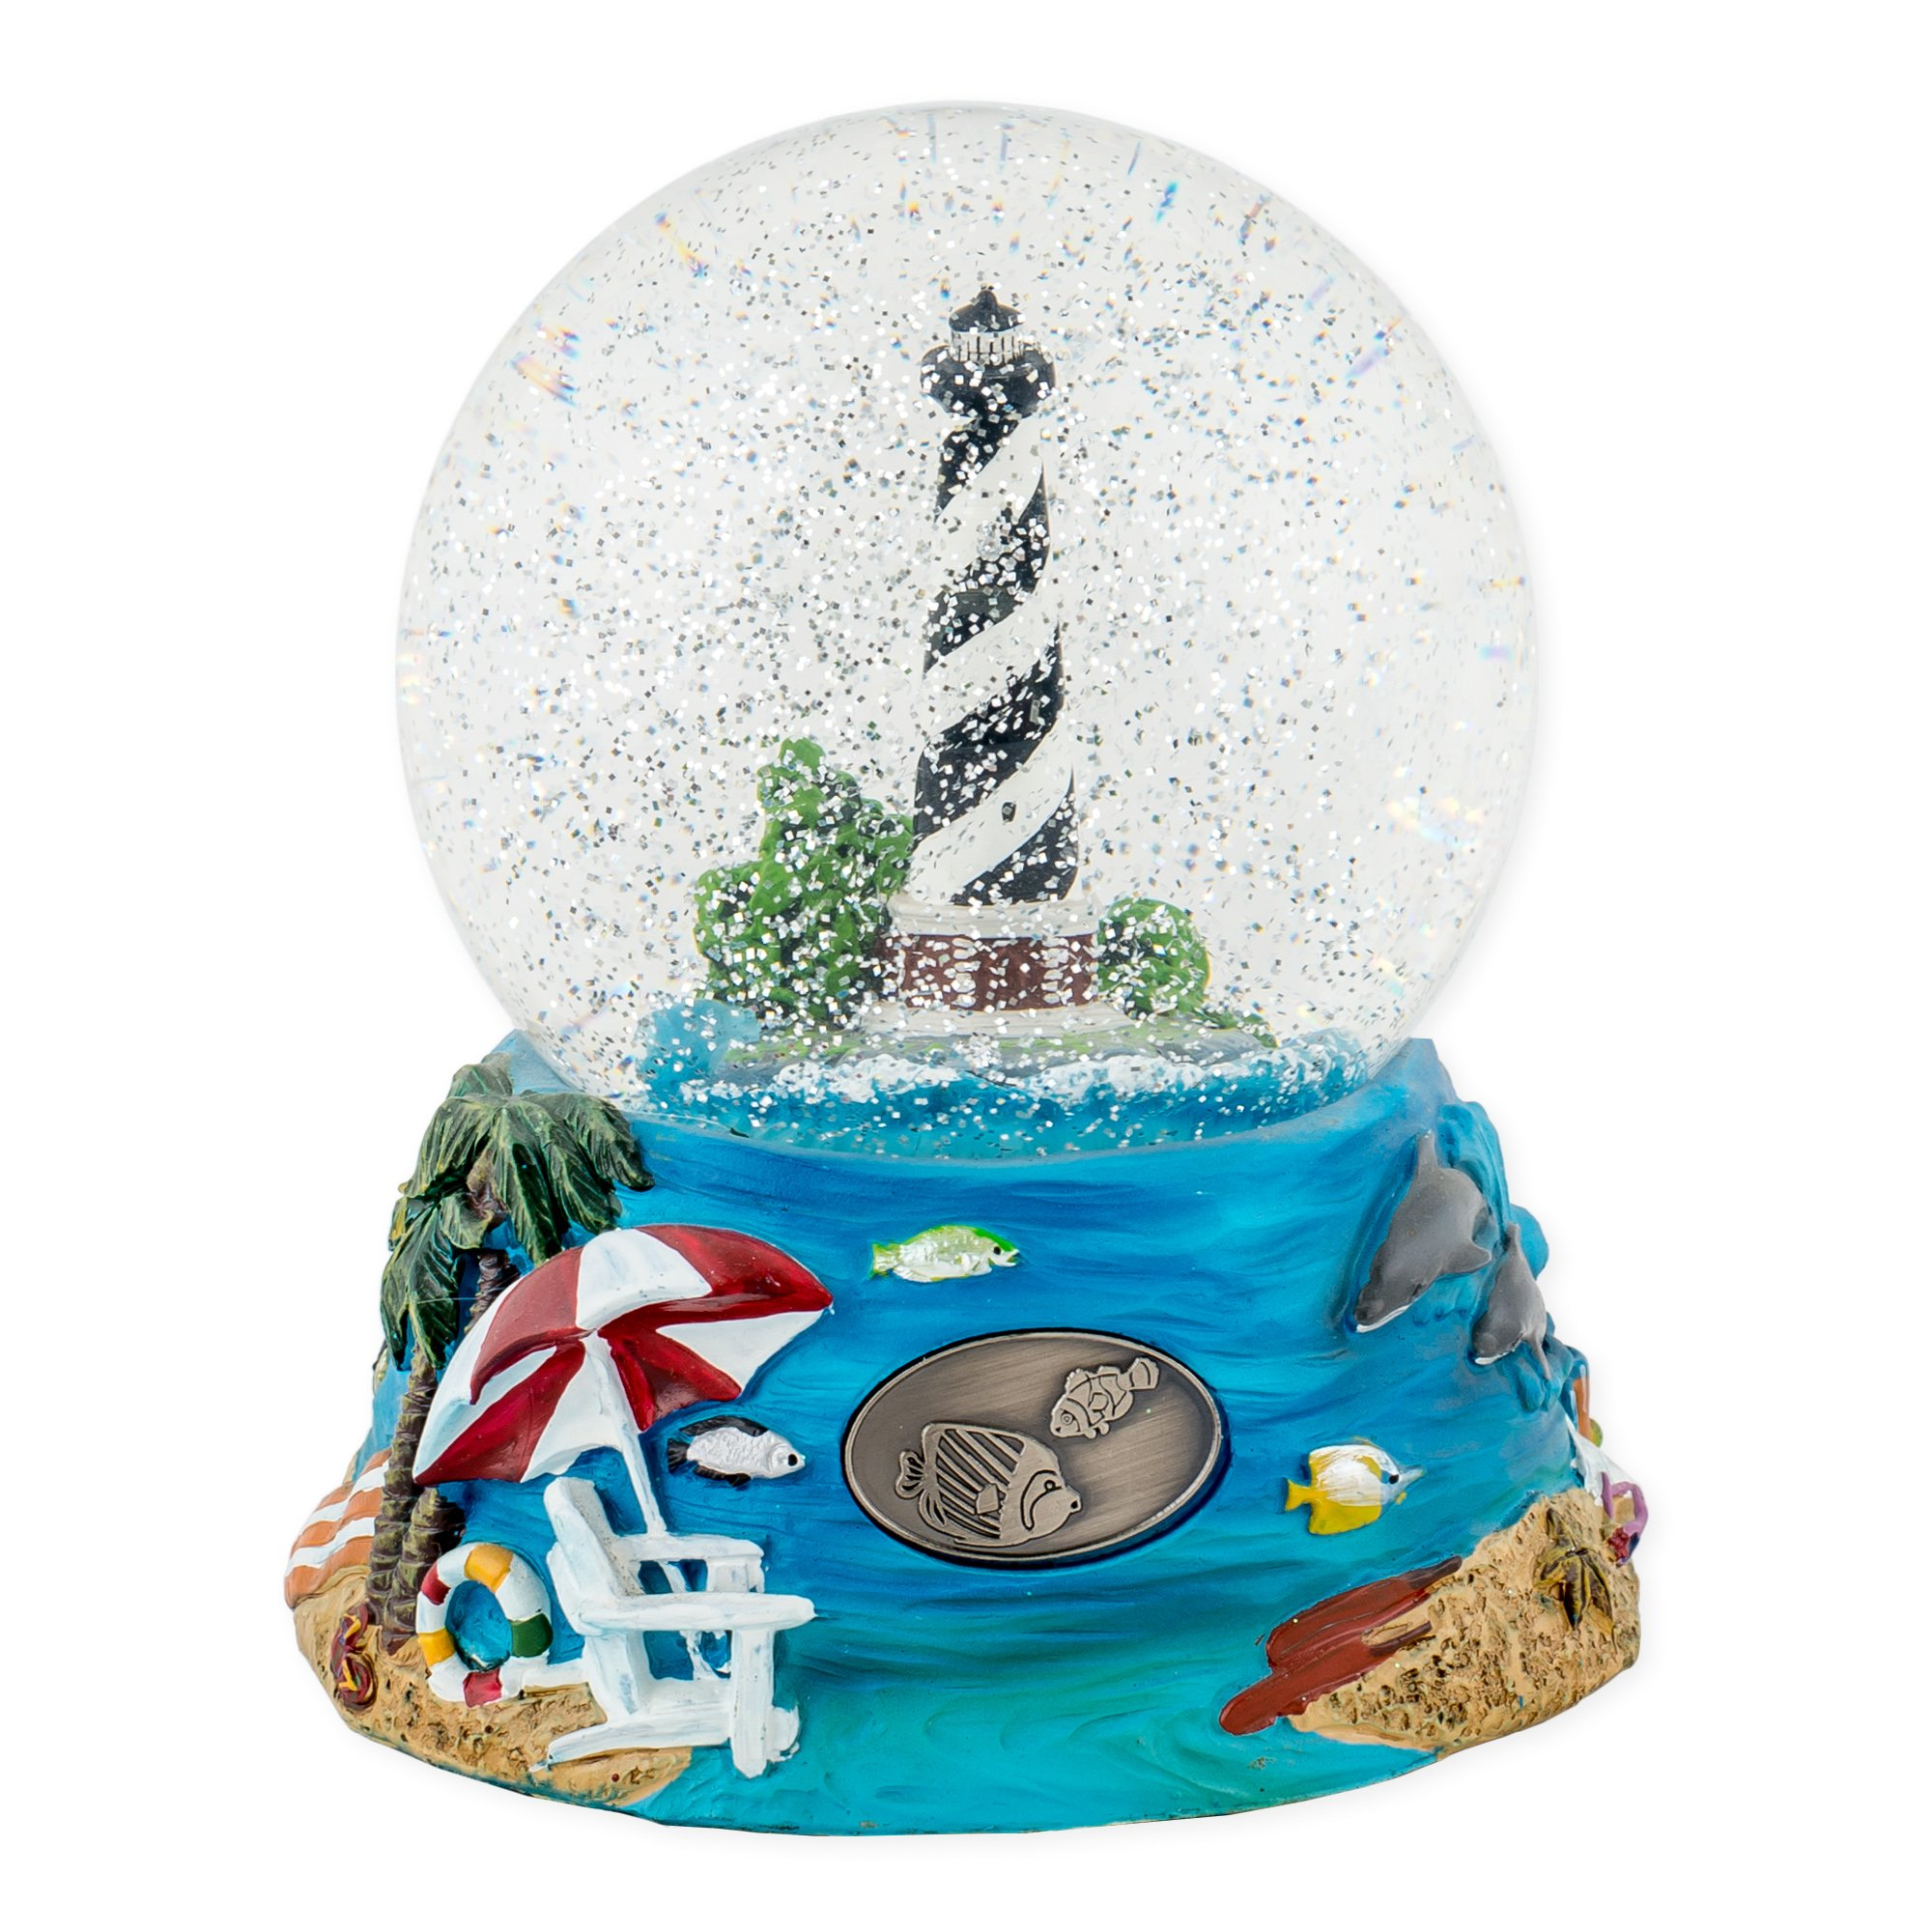 Nautical Lighthouse 100mm Resin Glitter Water Globe Plays Tune Over The Waves